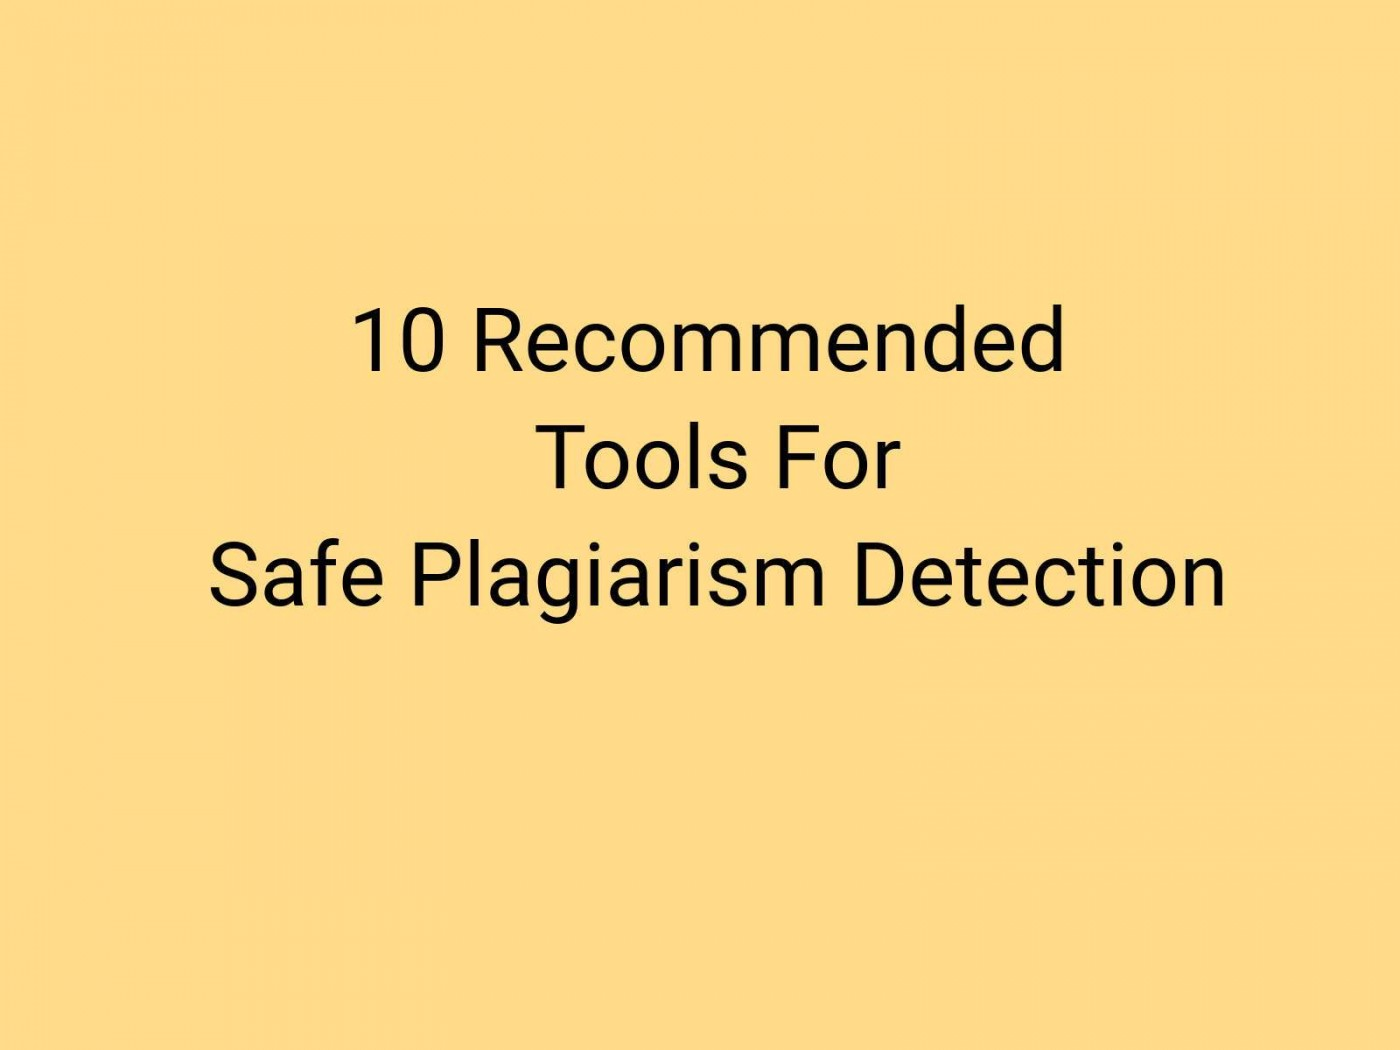 018 Plagiarism Detection Software Research Paper Best Amazing Writing 1400